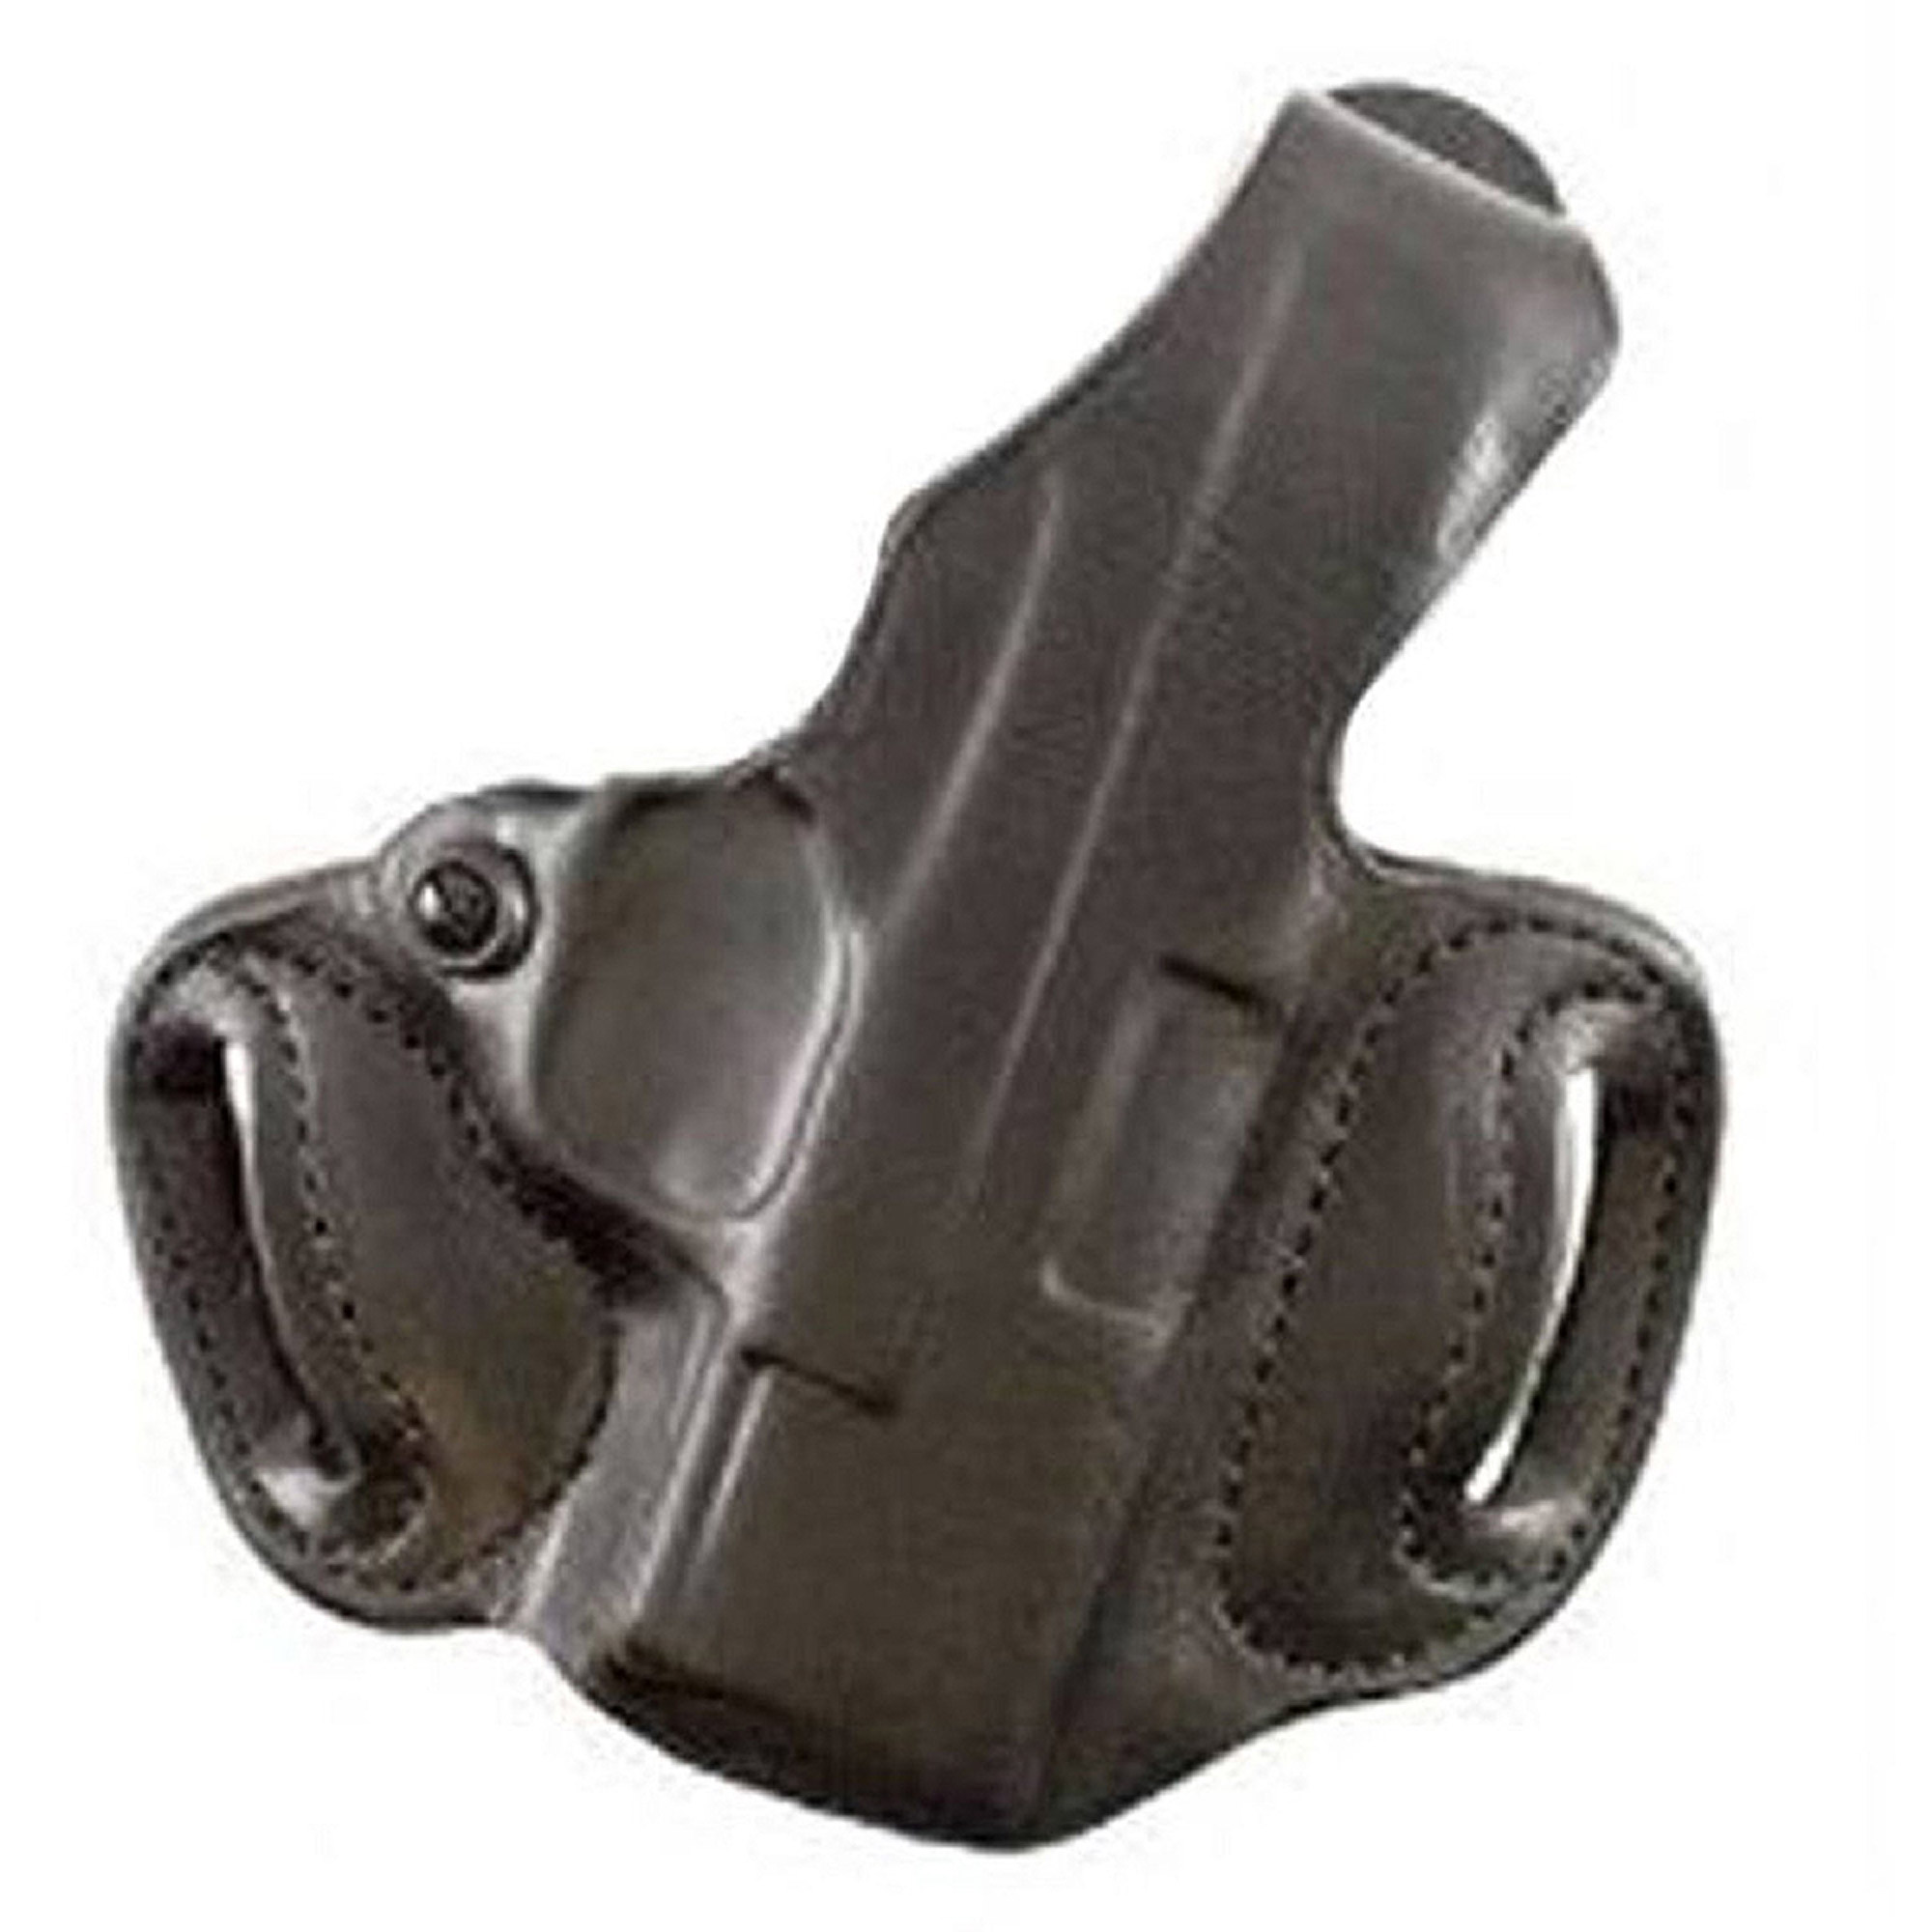 Desantis Thumb Break Mini Slide, Glock 43, Black by Desantis